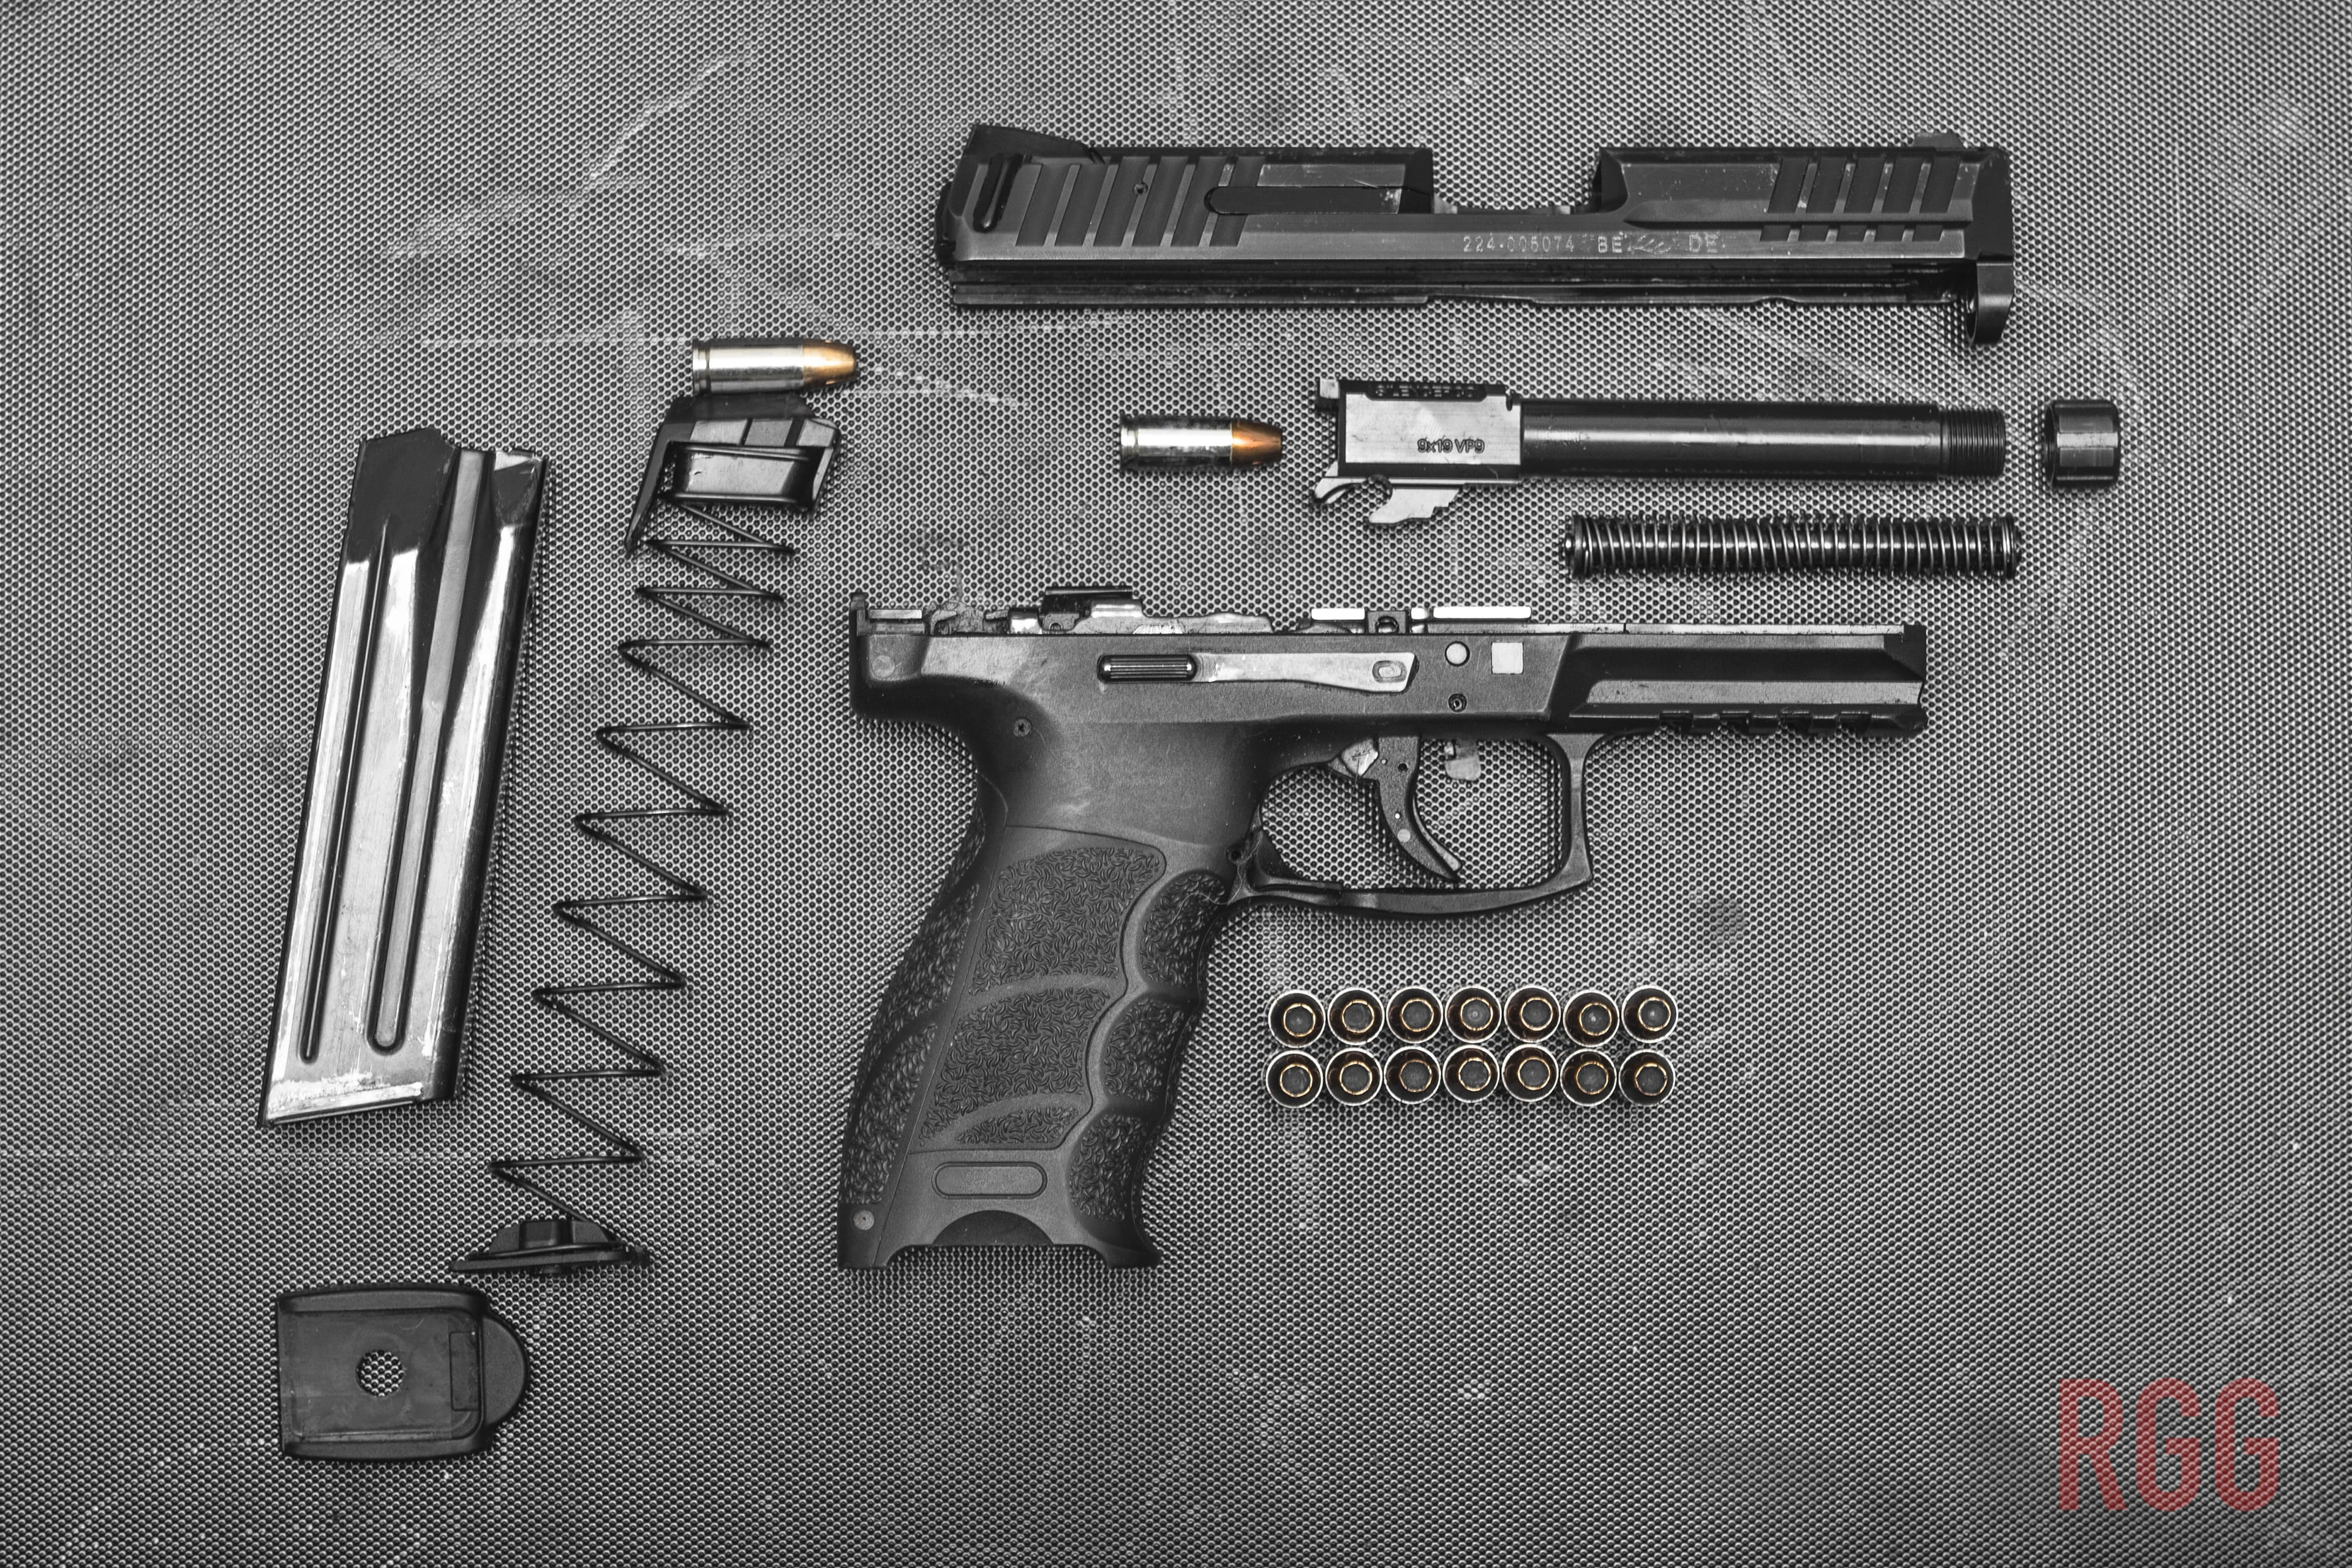 A Heckler & Koch VP9 in it's component pieces